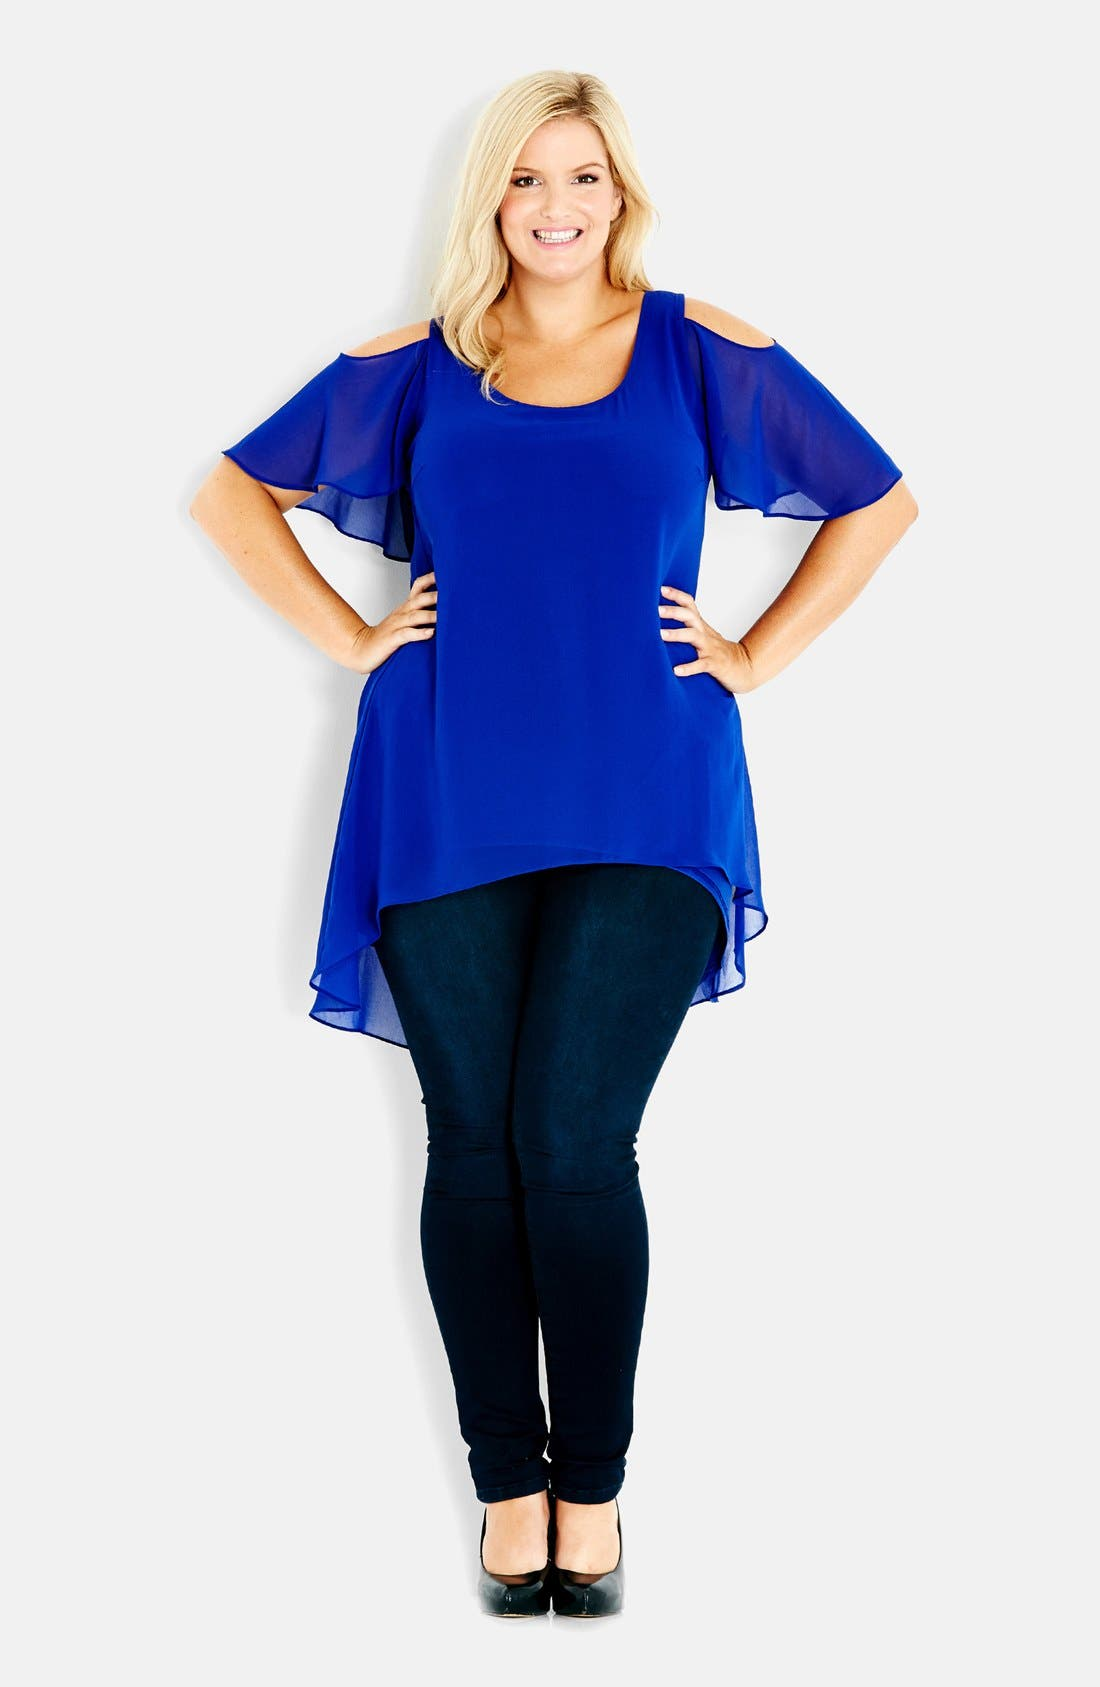 Main Image - City Chic Cold Shoulder High/Low Tunic Top (Plus Size)